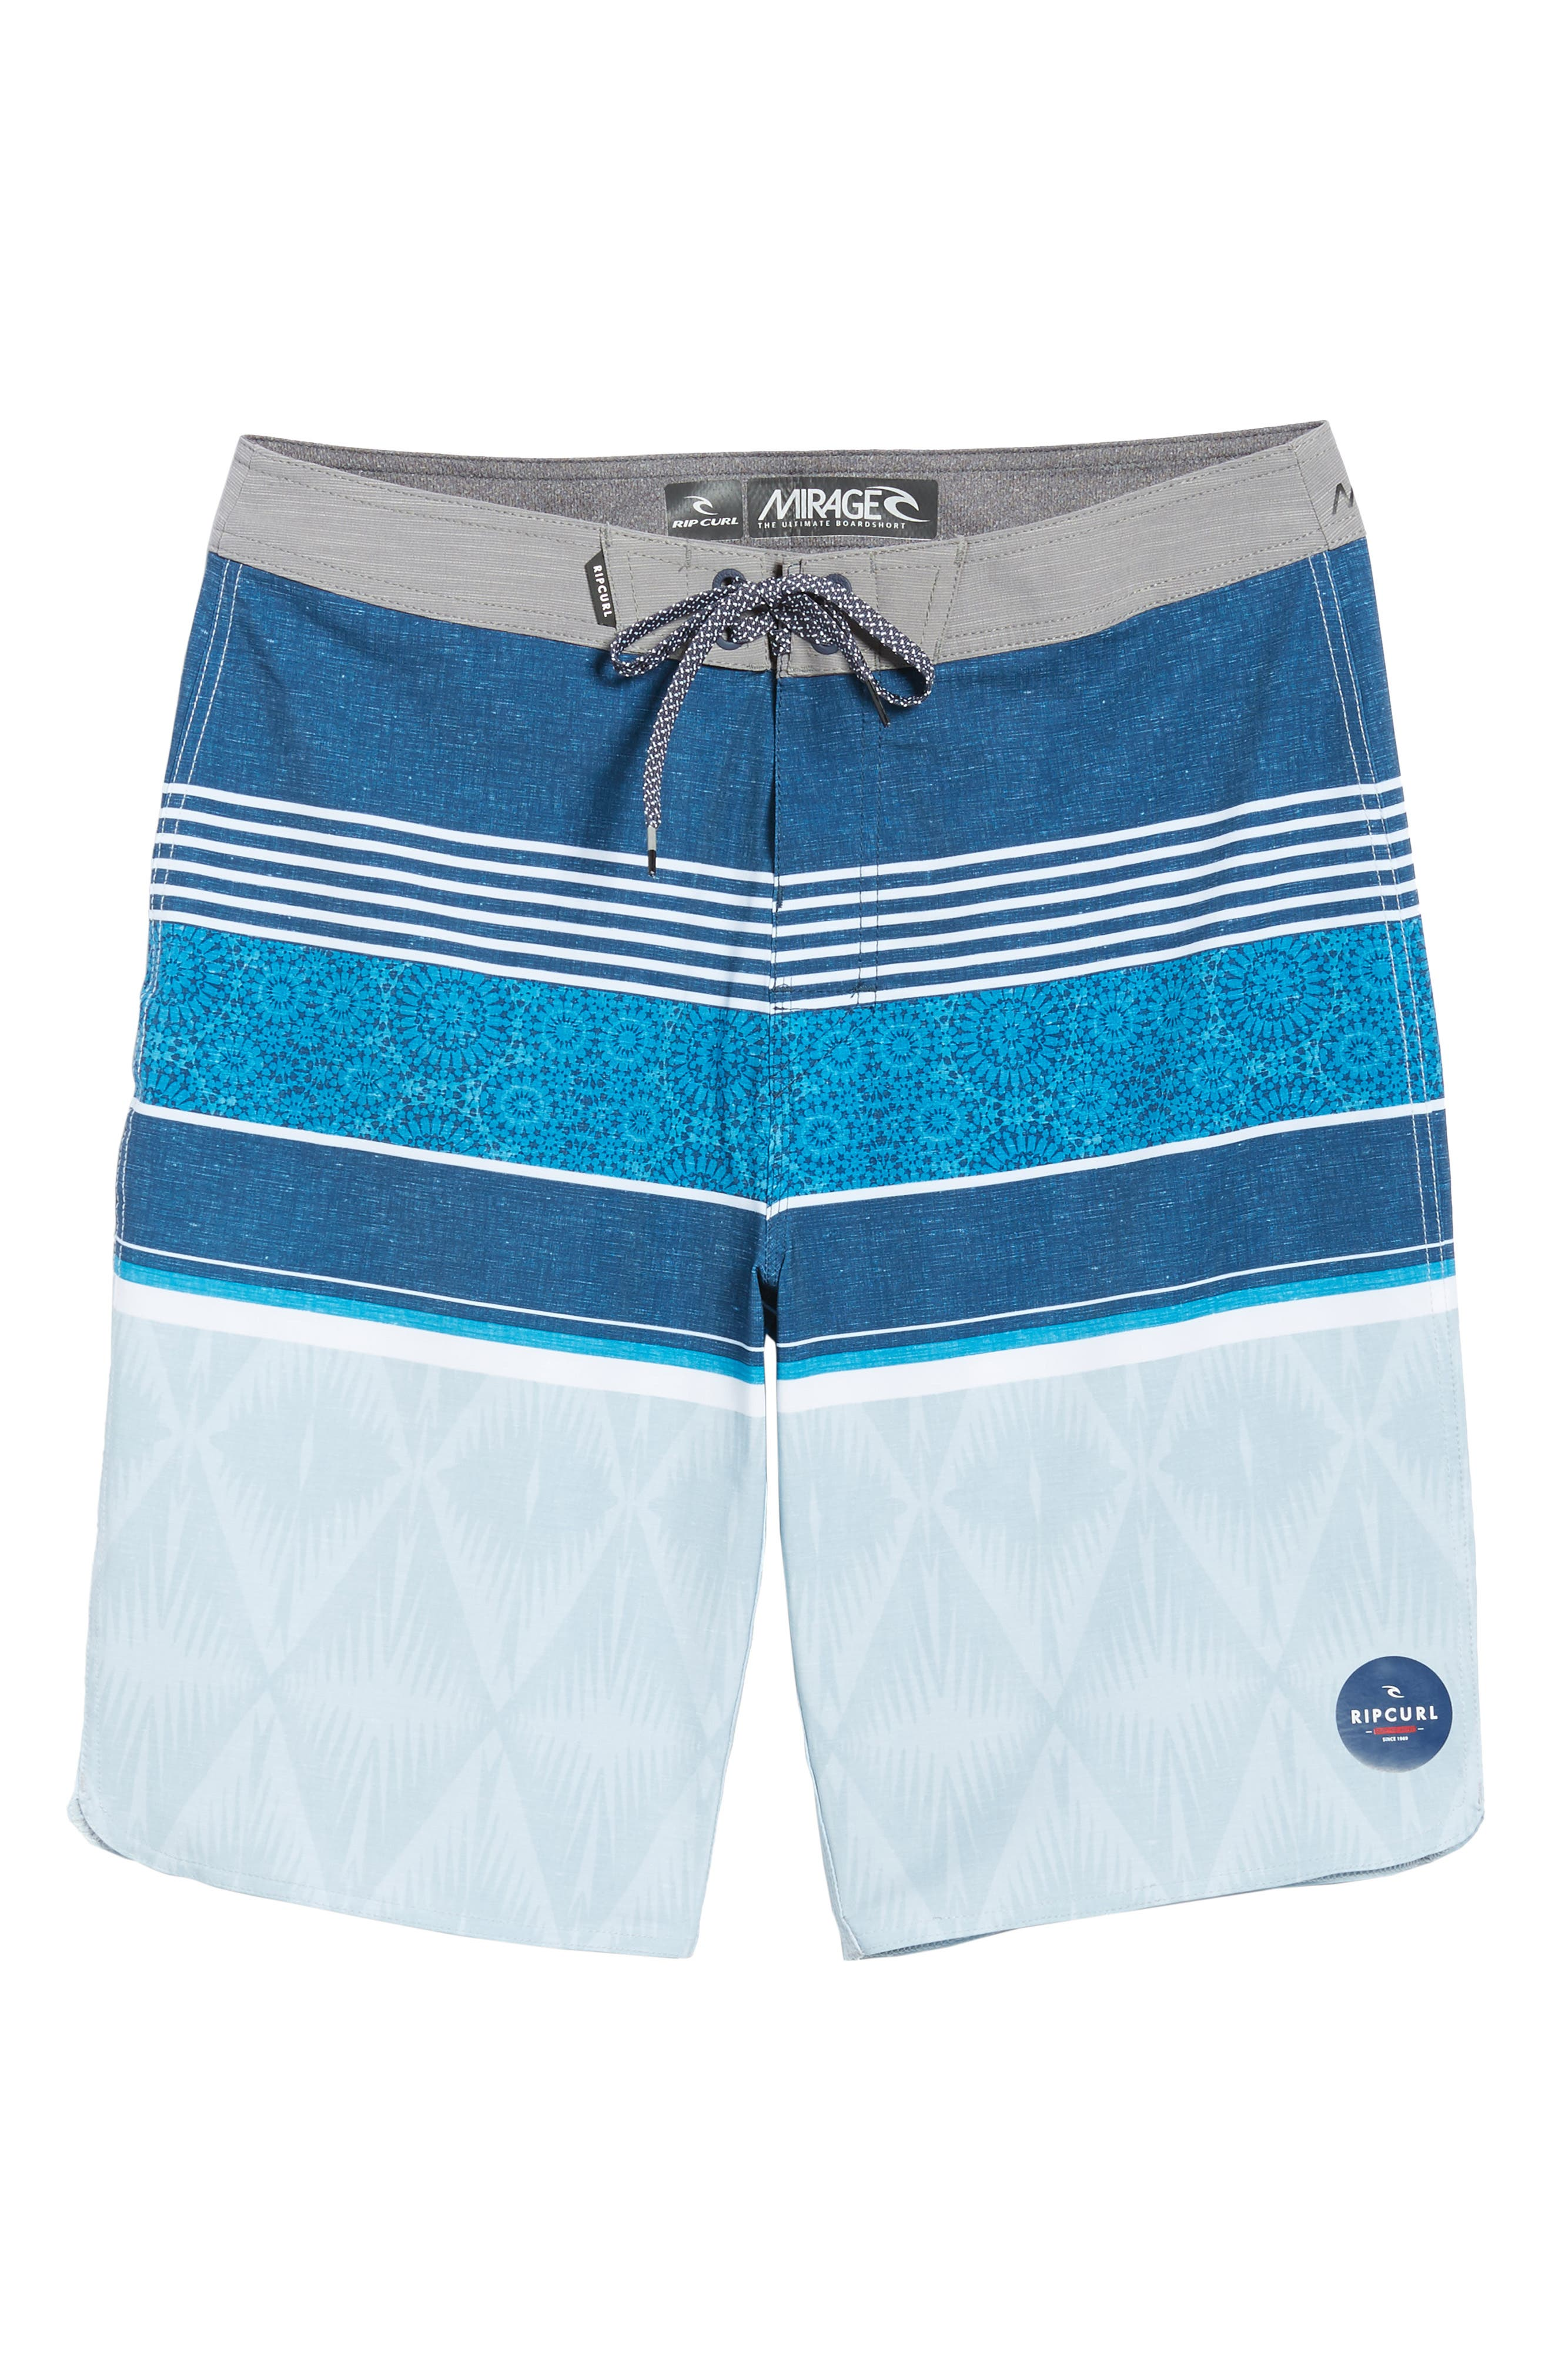 Mirage Sessions Board Shorts,                             Alternate thumbnail 5, color,                             Navy